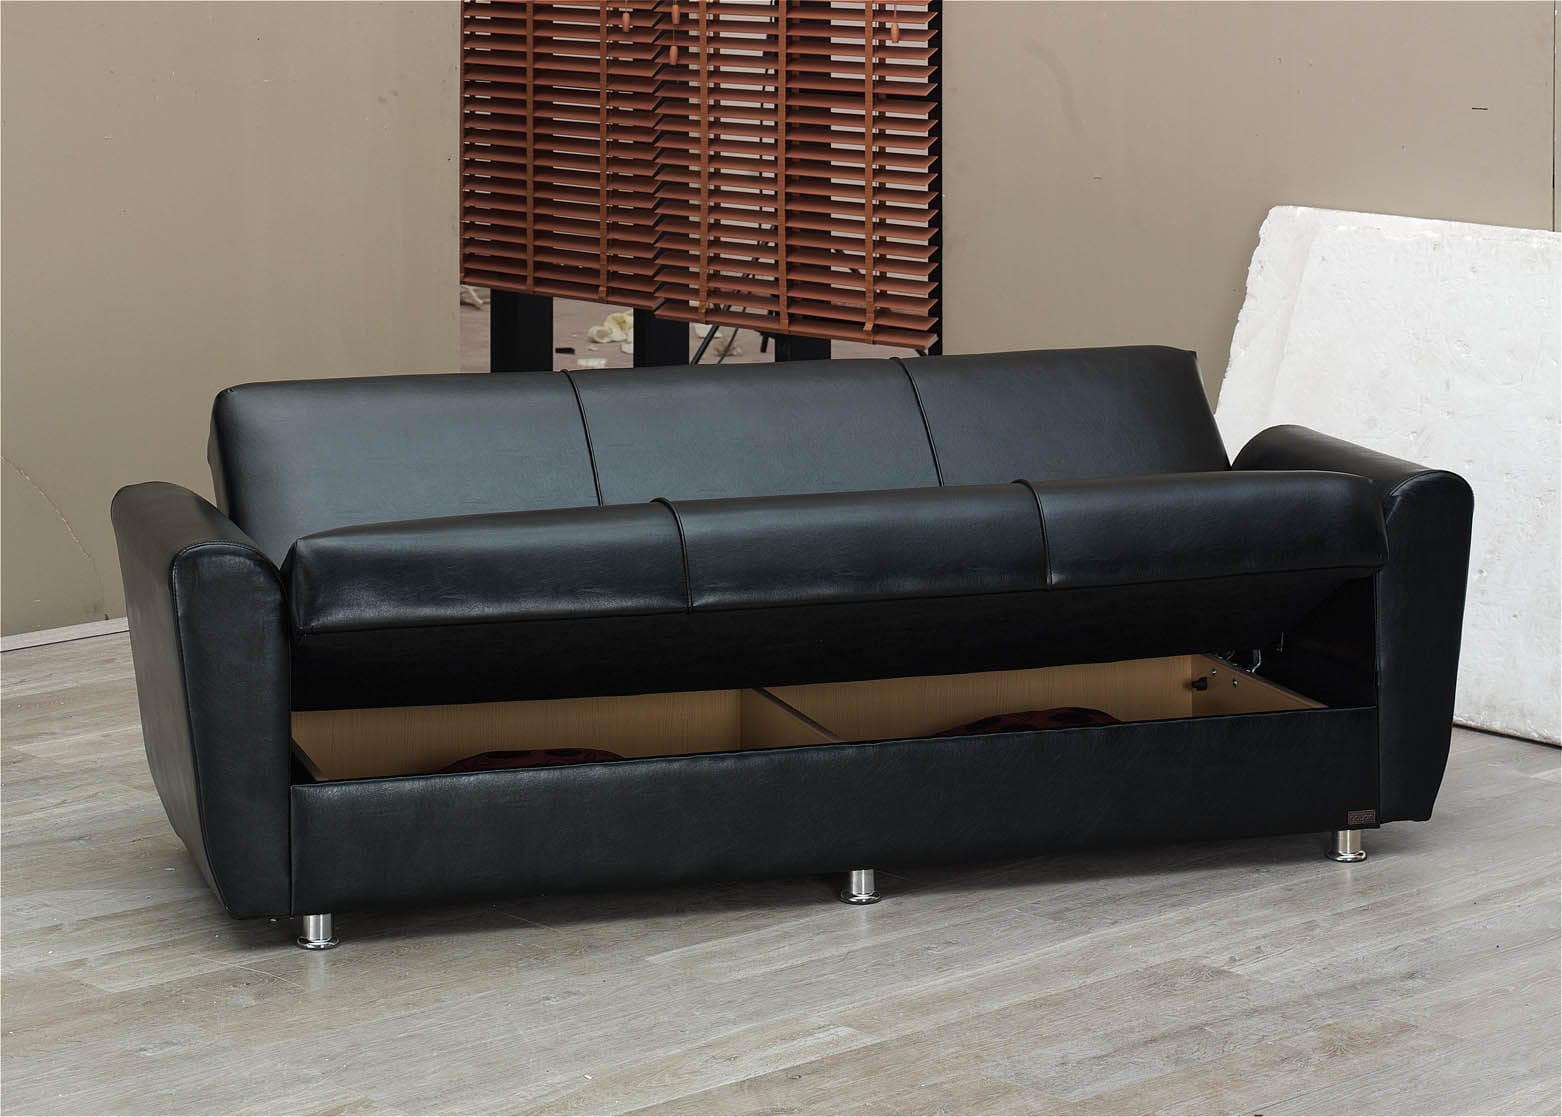 Harlem Black Leather Sofa Bed By Empire